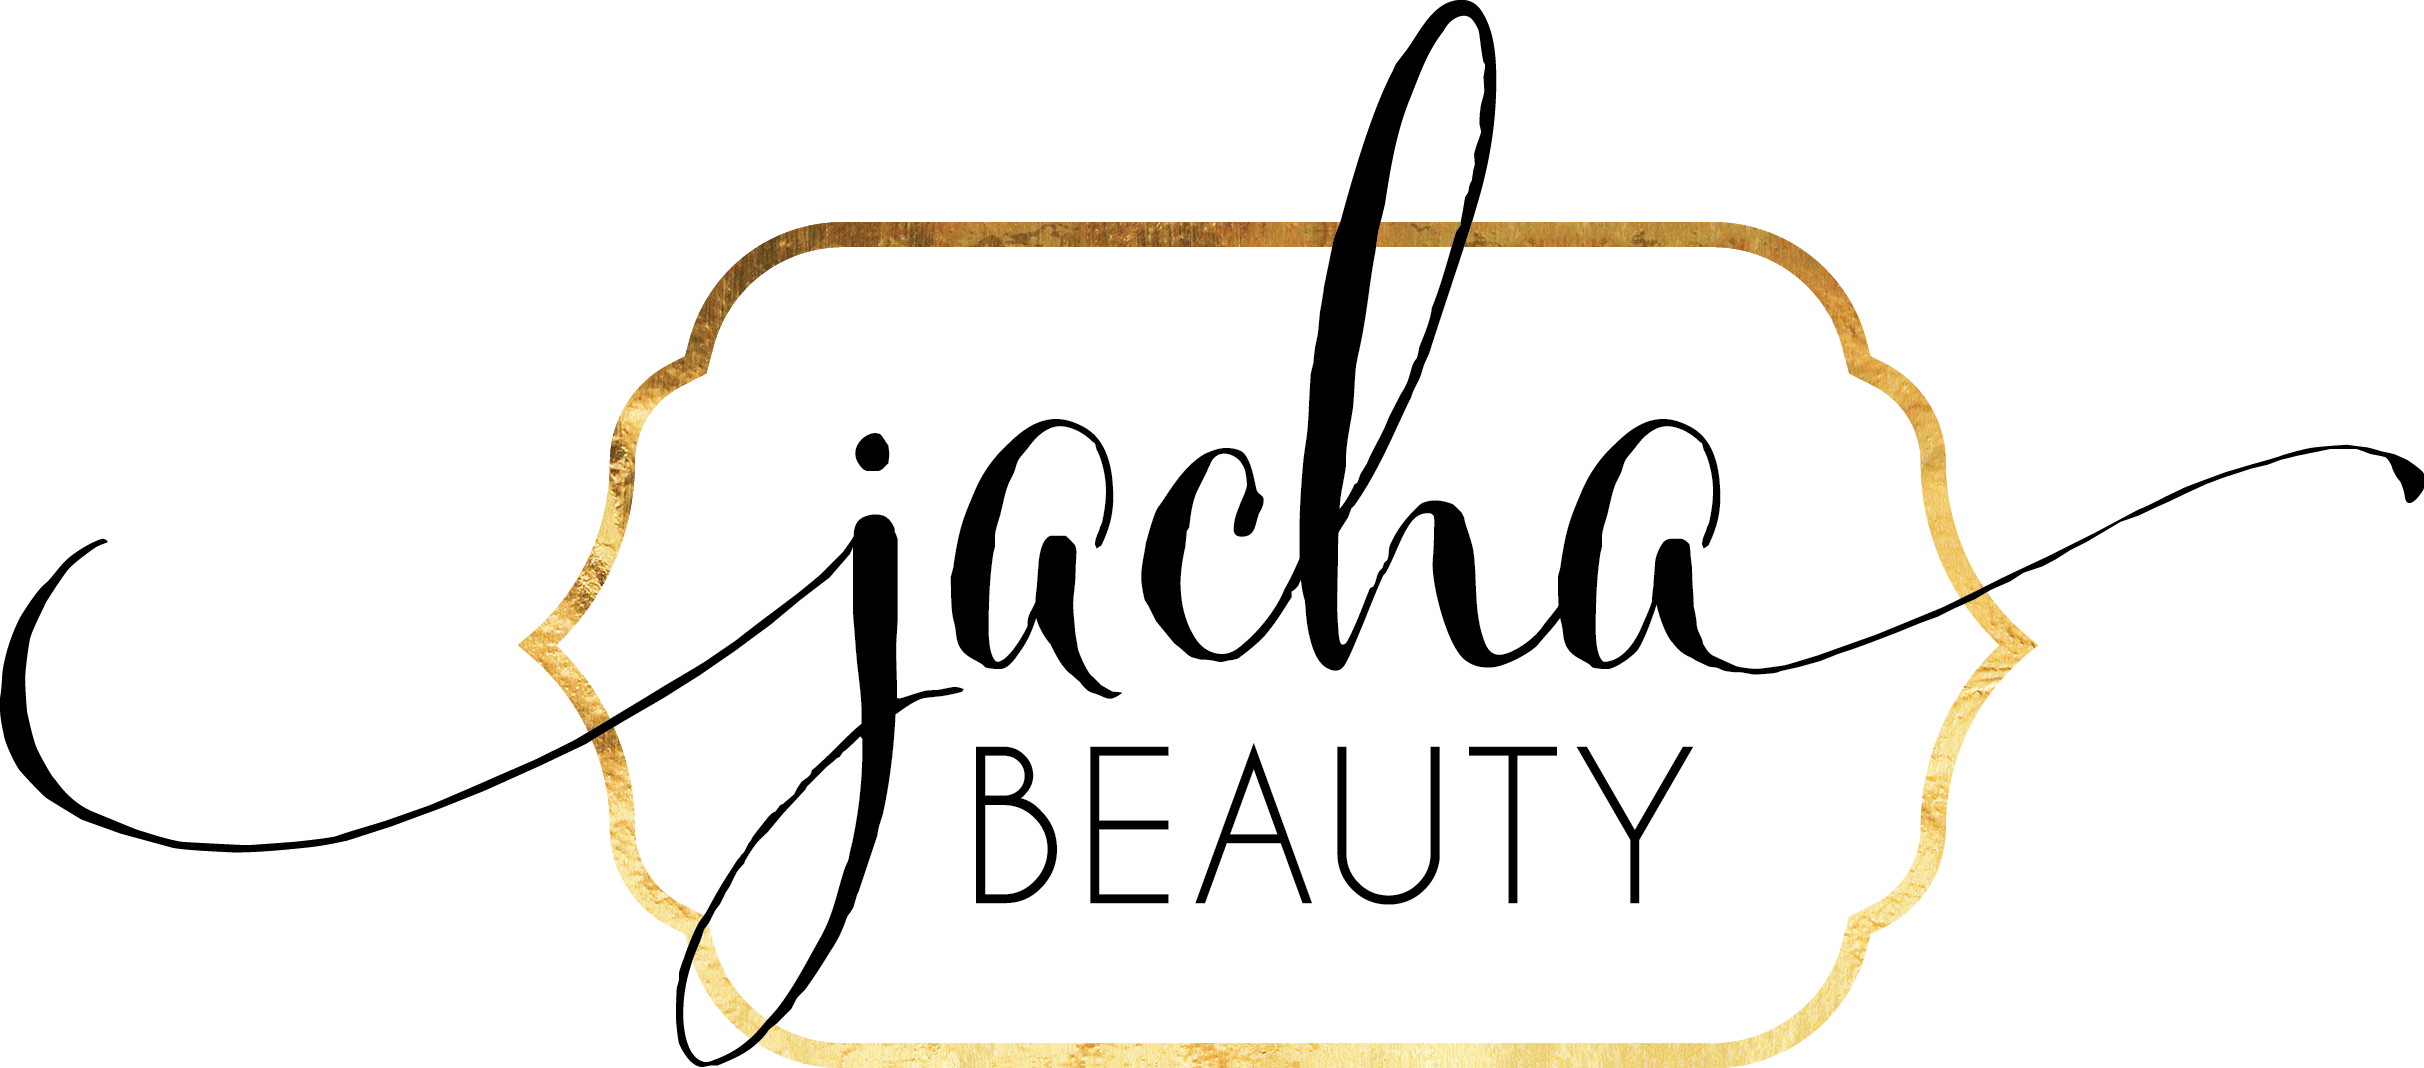 jacha Beauty